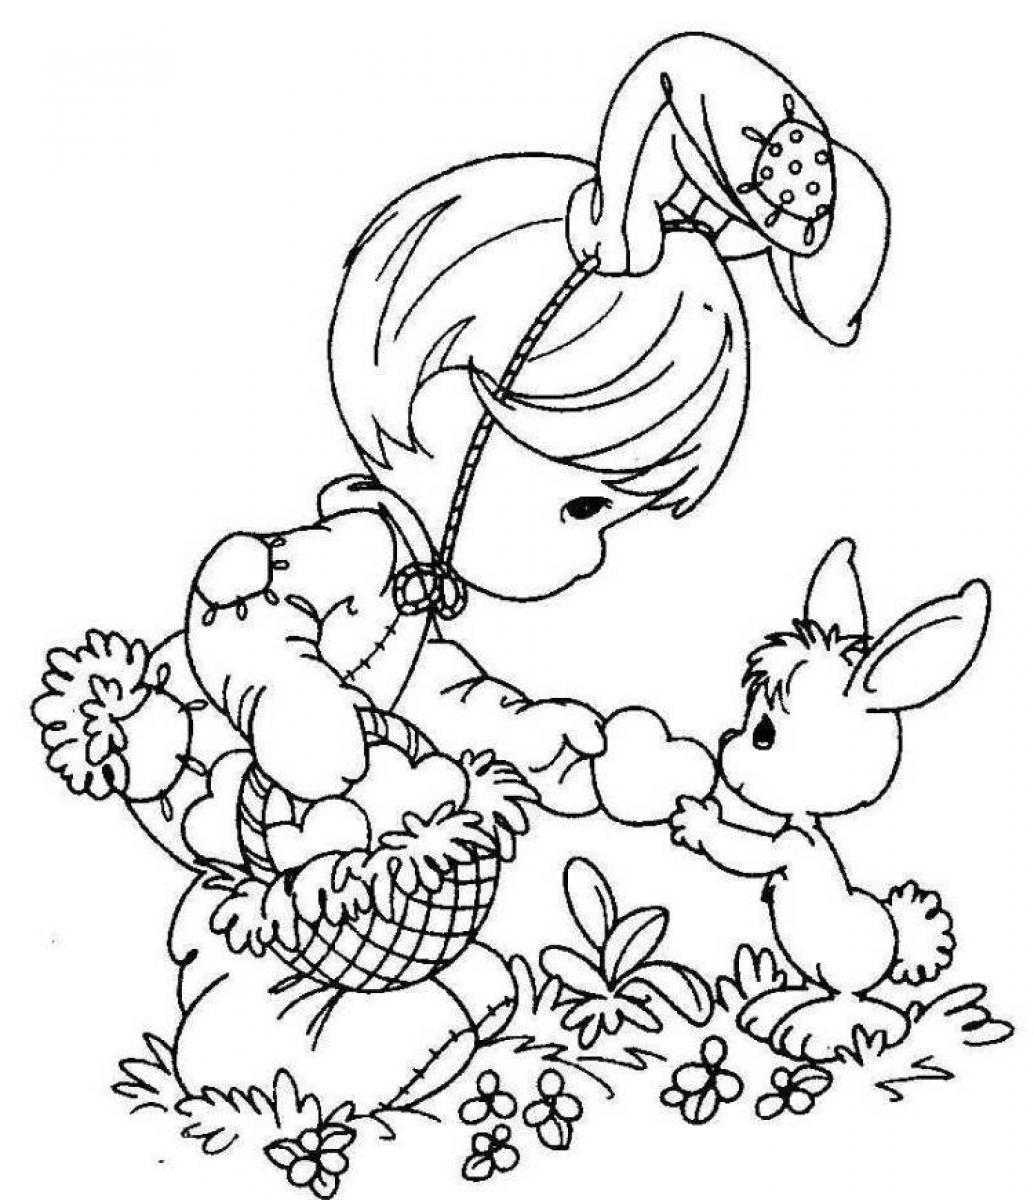 Online Easter Coloring Pages to Print 16h - Free For kids